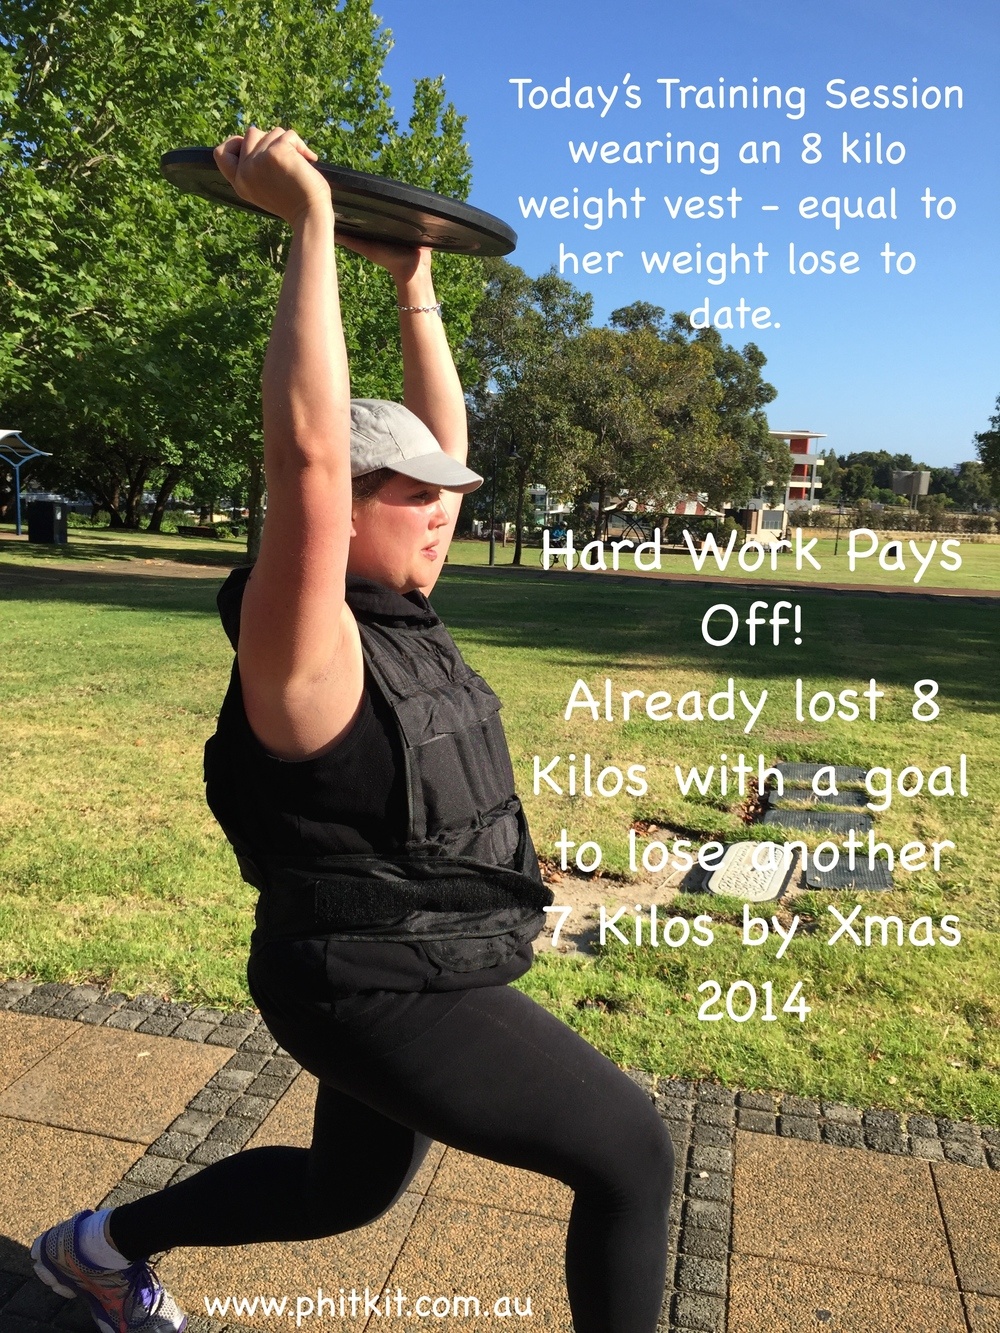 Client Wears 8kg Weight Vest During Training To Reflect Her Current Weight Lose.